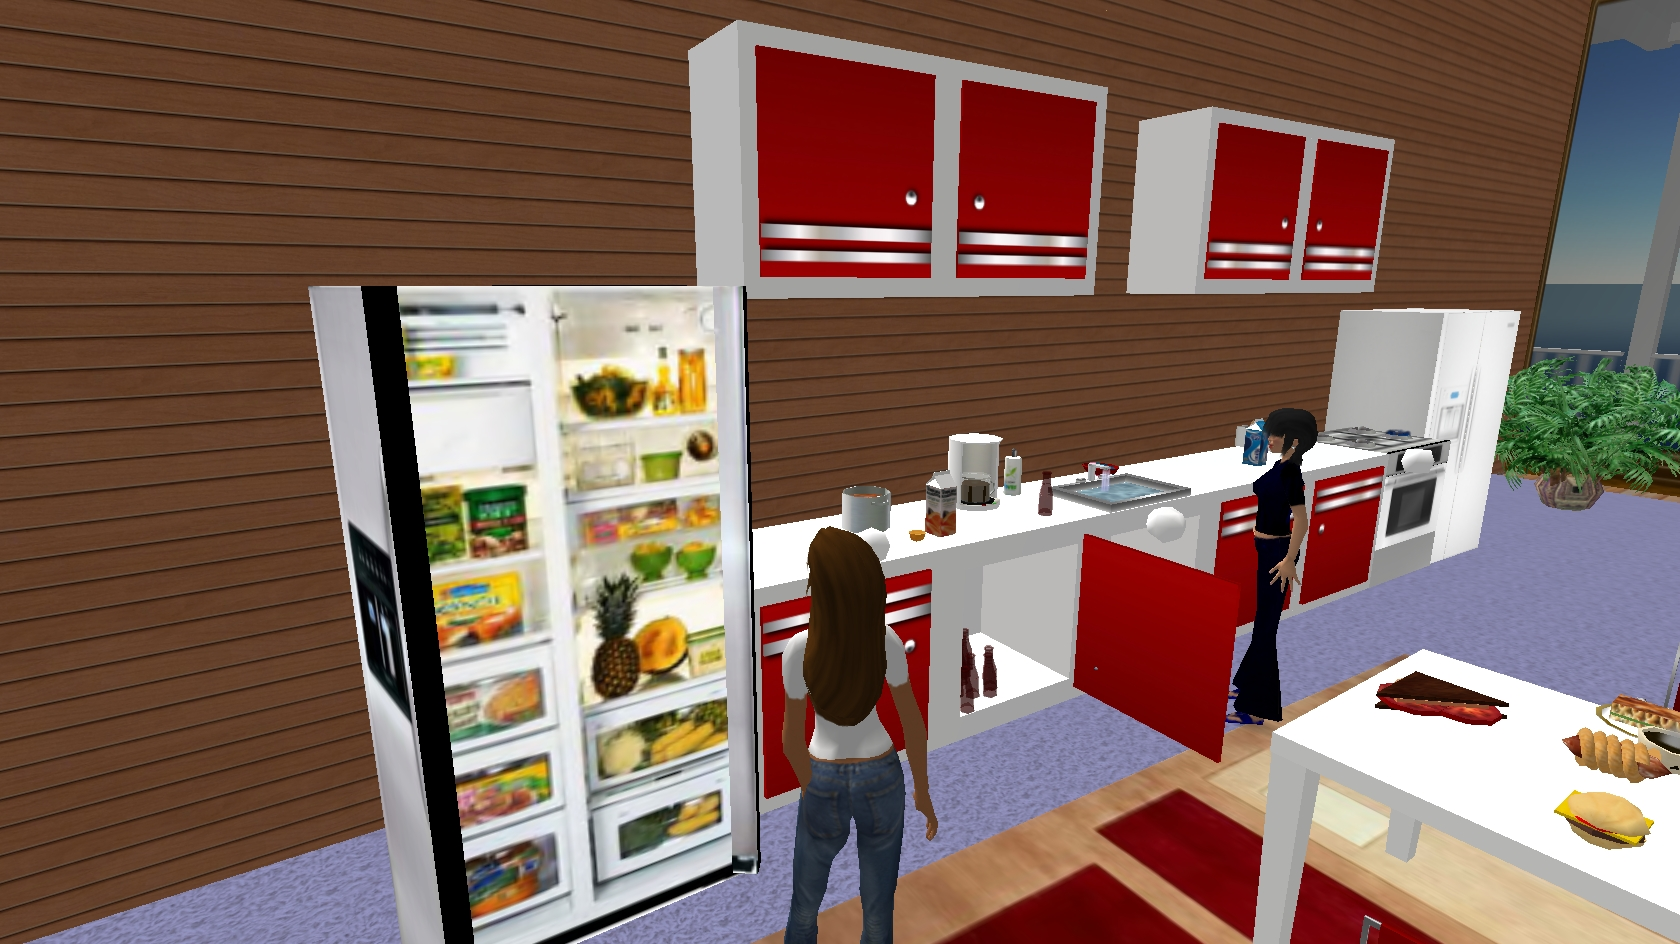 Virtual kitchen autodesk dragonfly online 3d for Kitchen visualizer free